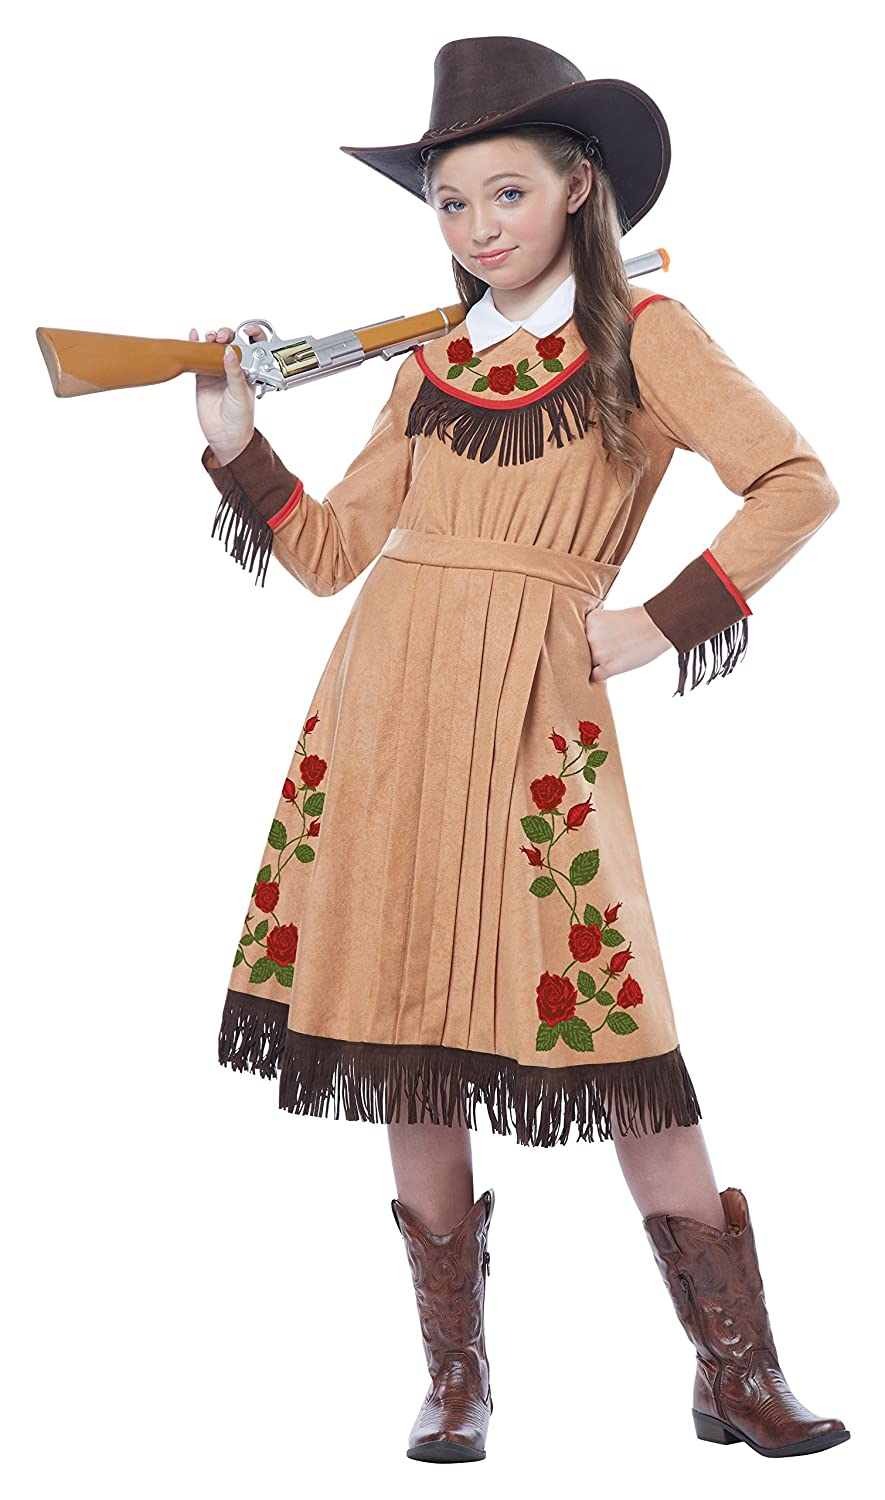 oakley kids clothing  amazon: california costumes cowgirl/annie oakley girl costume, one color, medium: toys & games